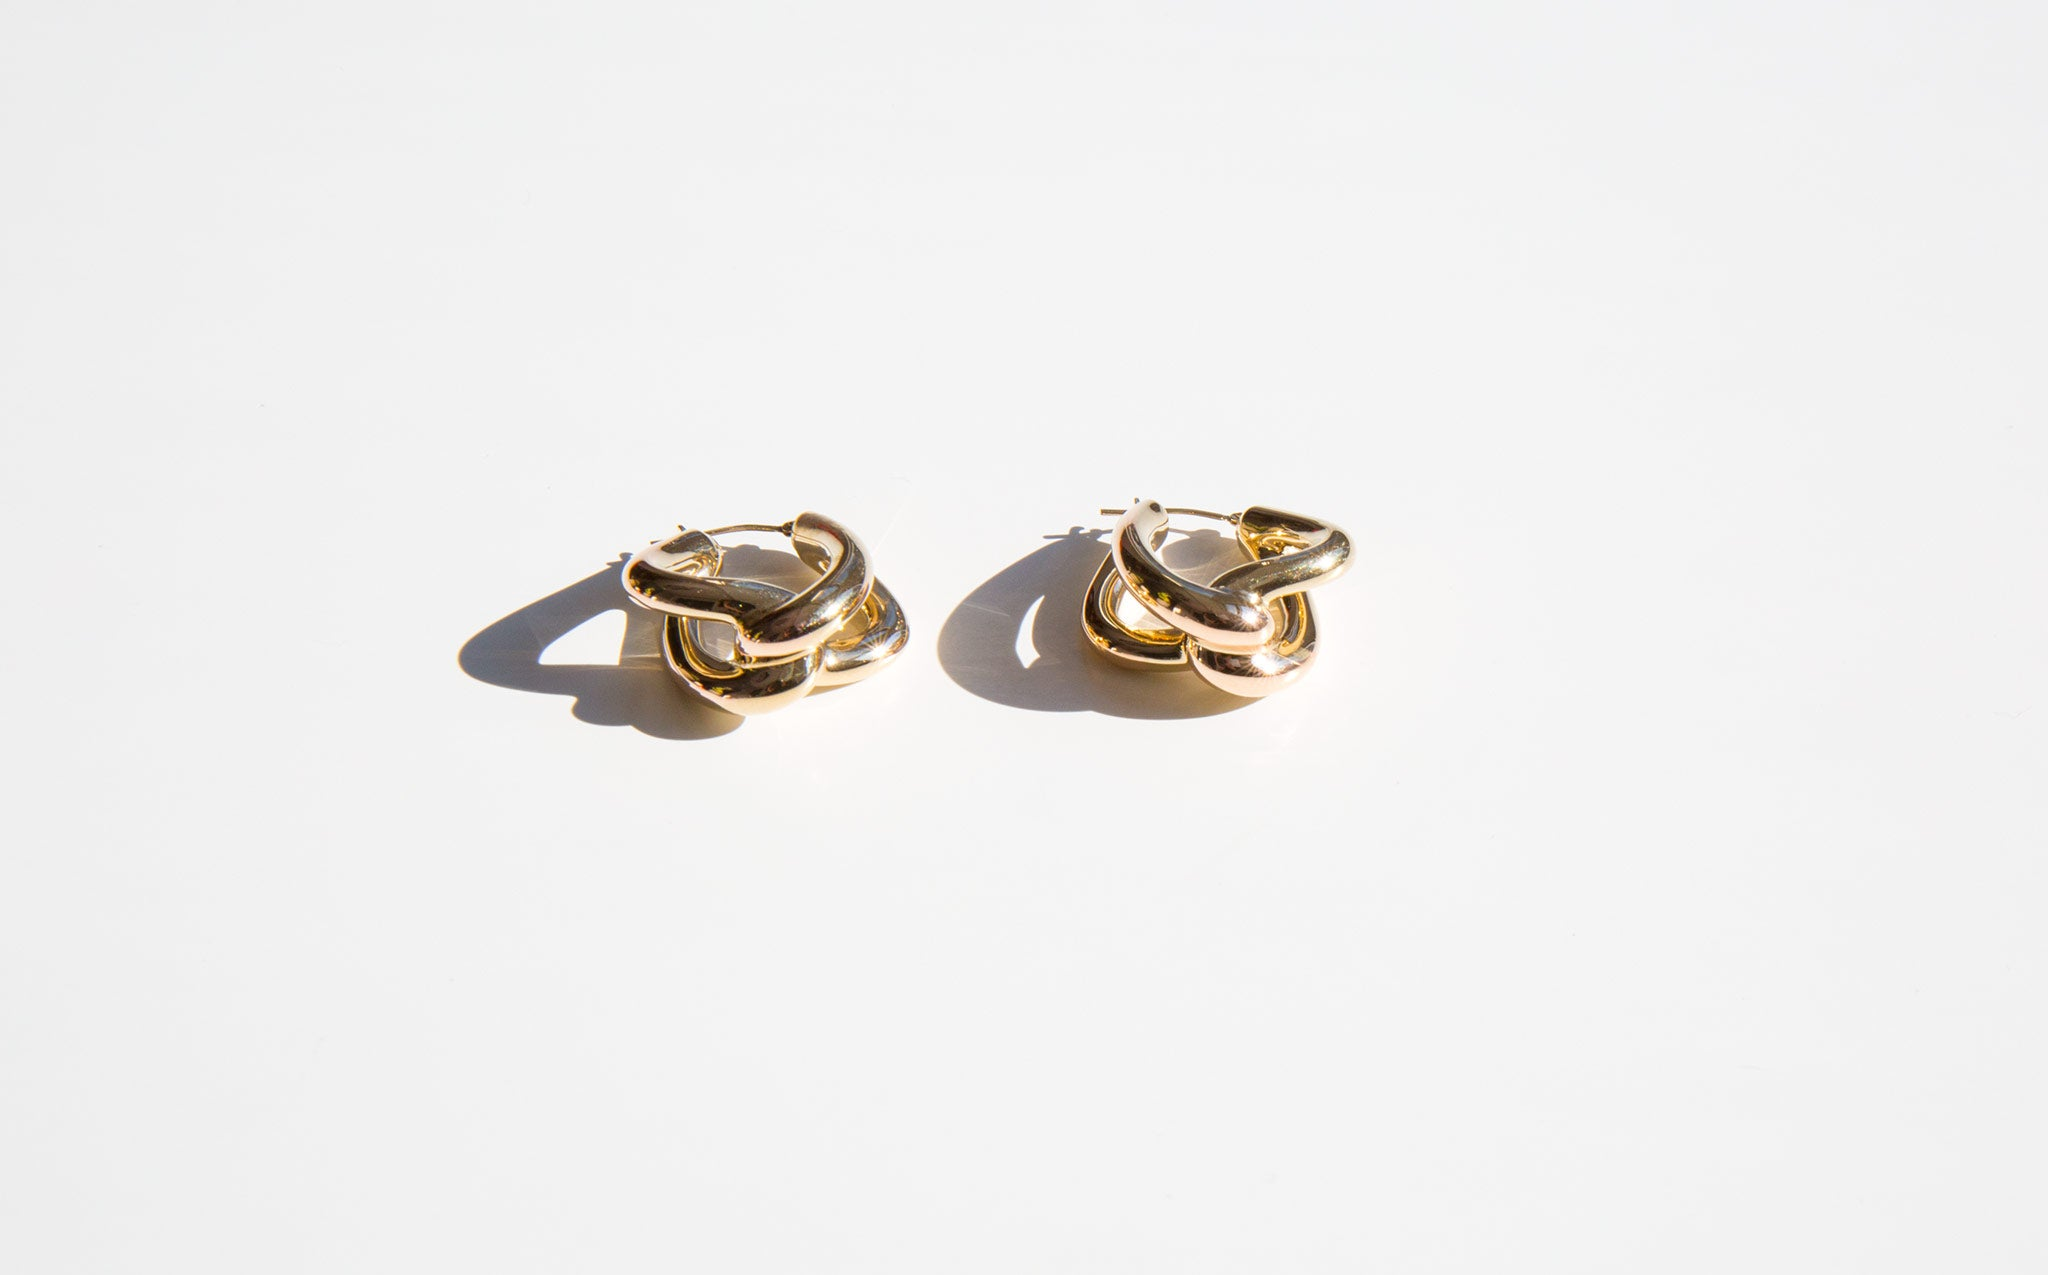 The Golden Knot Earrings